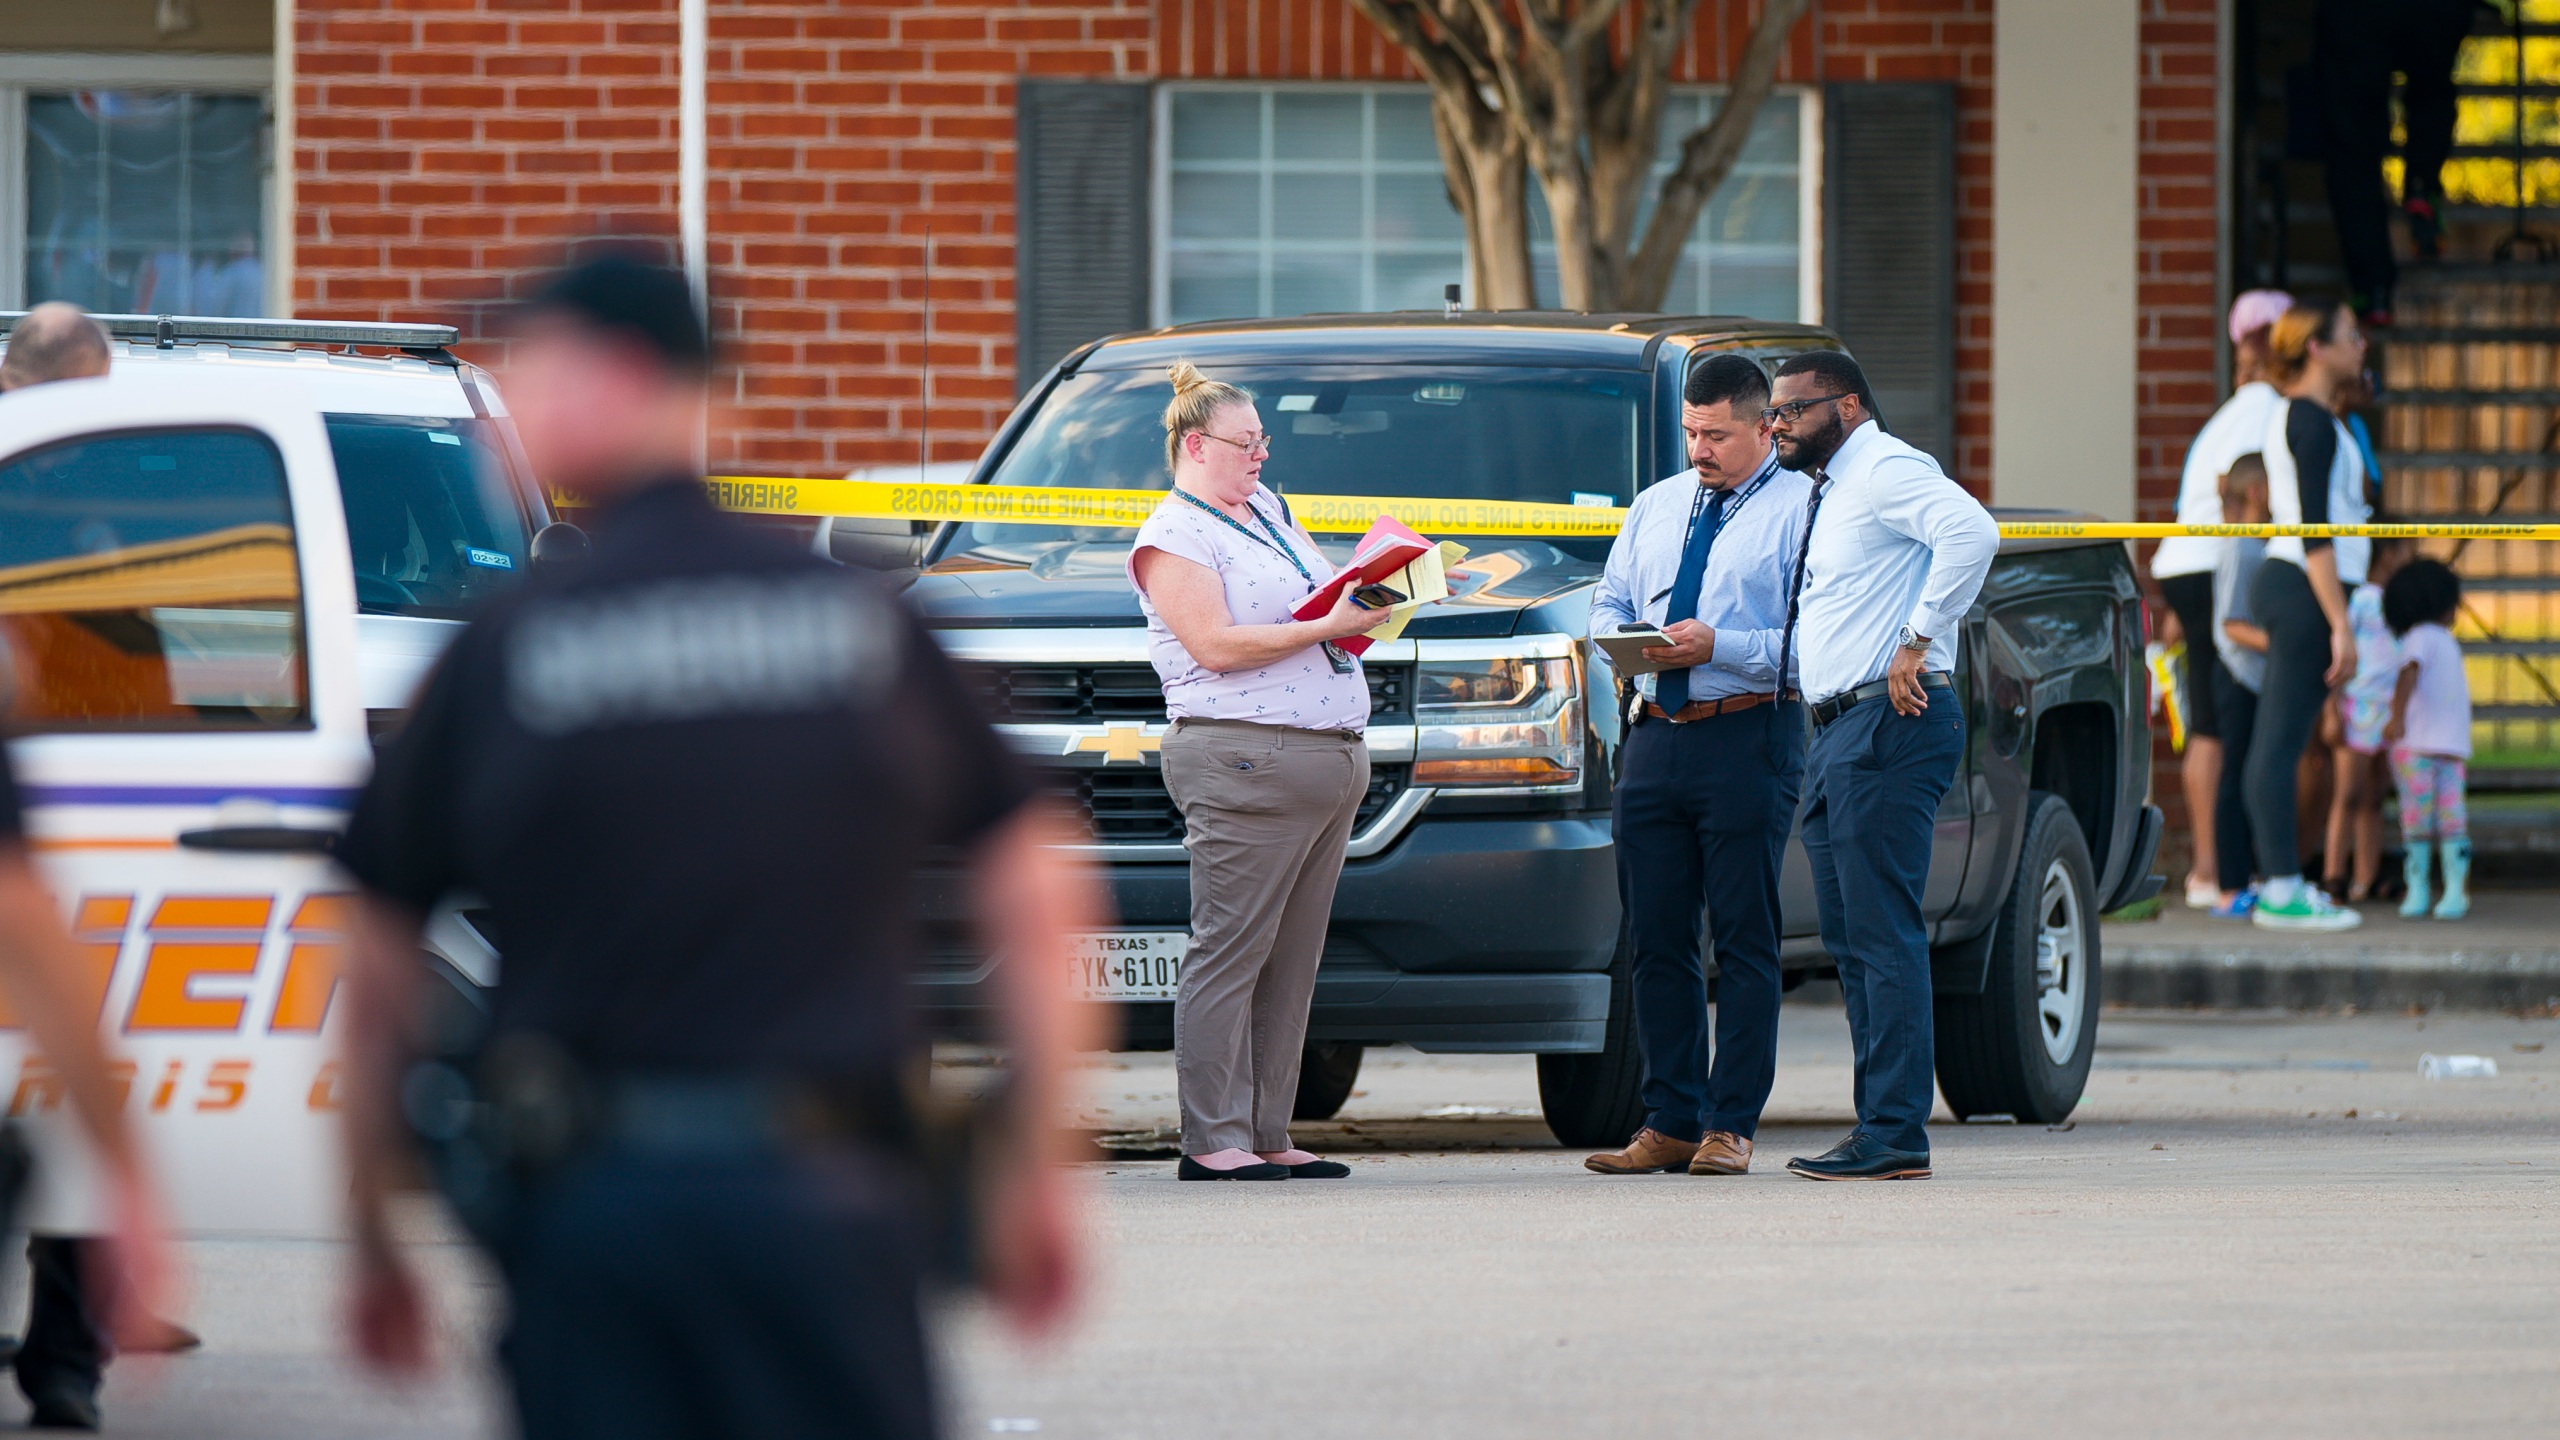 Law enforcement officials investigate a scene where, according to Harris County Sheriff Ed Gonzalez, three juveniles were found living alone along with the skeletal remains of another person, possibly a juvenile, in a third floor apartment at the CityParc II at West Oaks Apartments on Sunday, Oct. 24, 2021, at in west Houston. (Mark Mulligan/Houston Chronicle via AP)